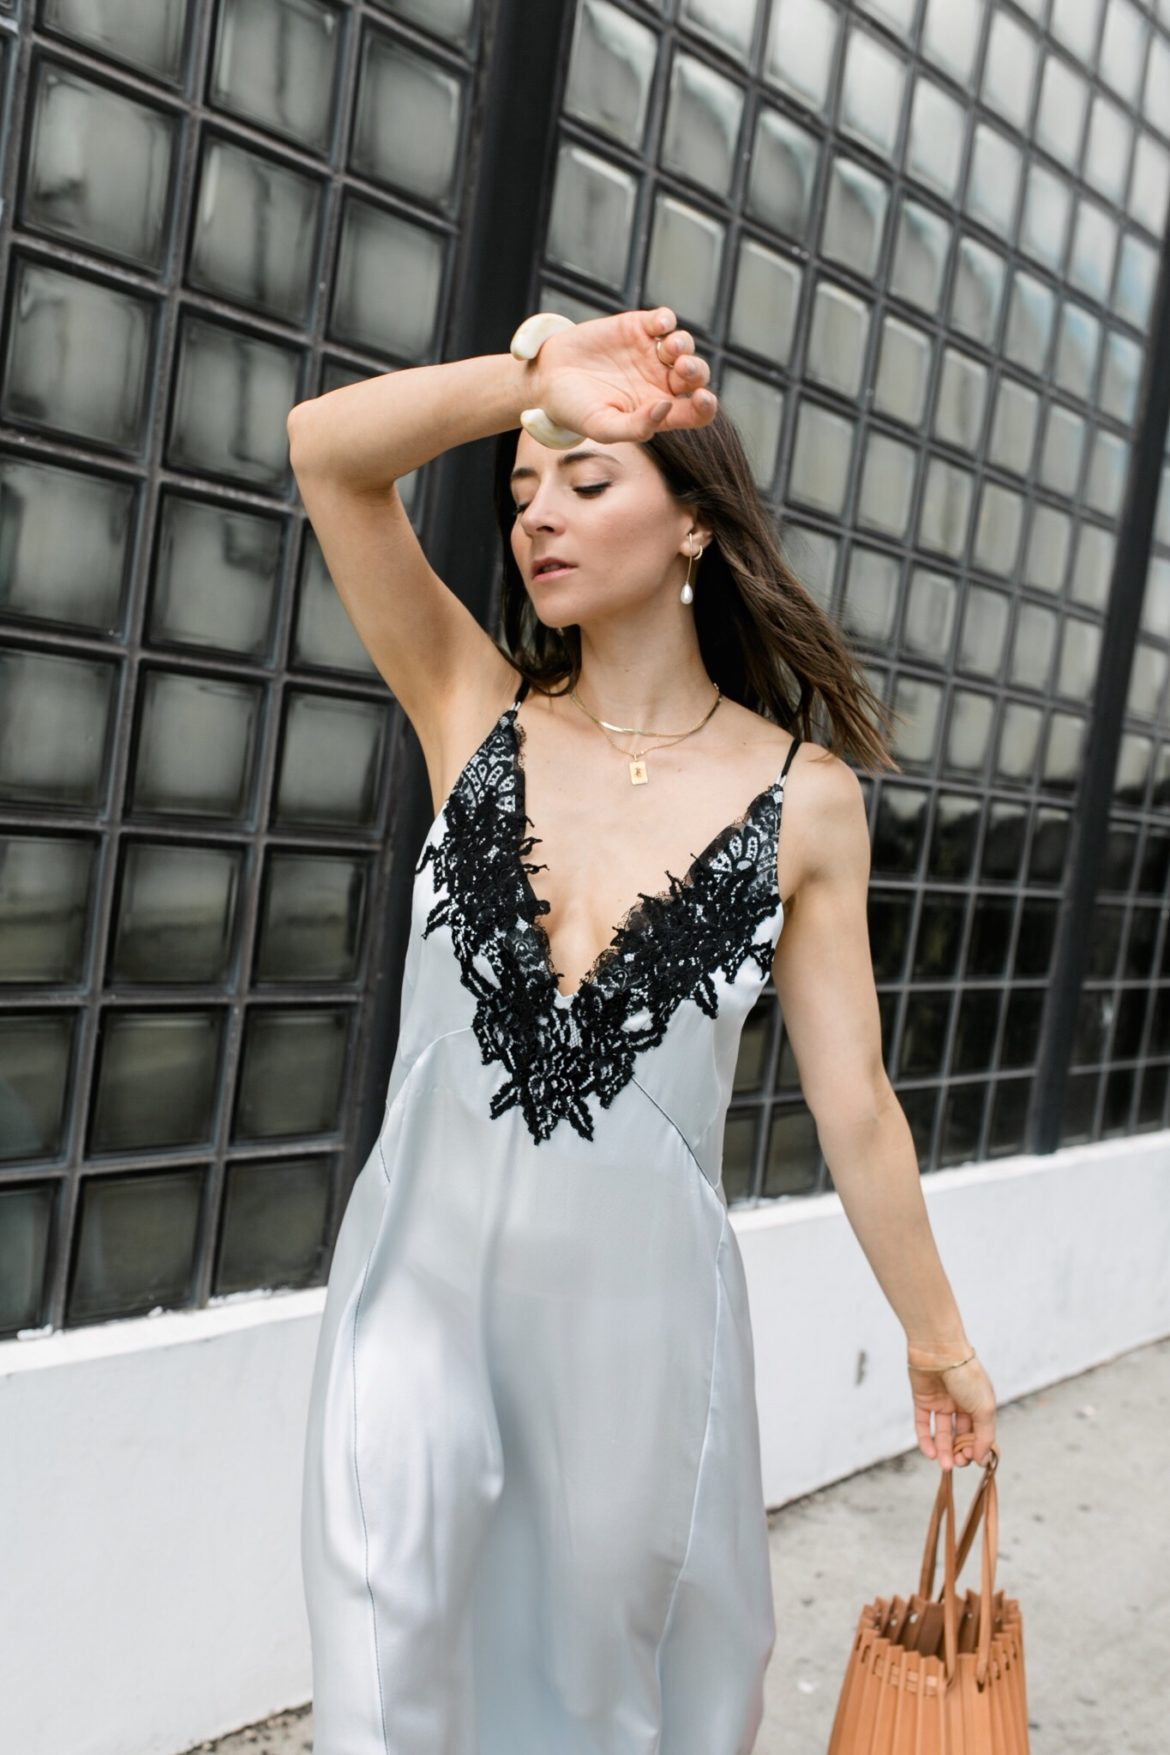 90's style: How to wear the satin slip dress - by los angeles fashion blogger julia comil. Wearing Dorothee Schumacher Satin Silk Slip Dress